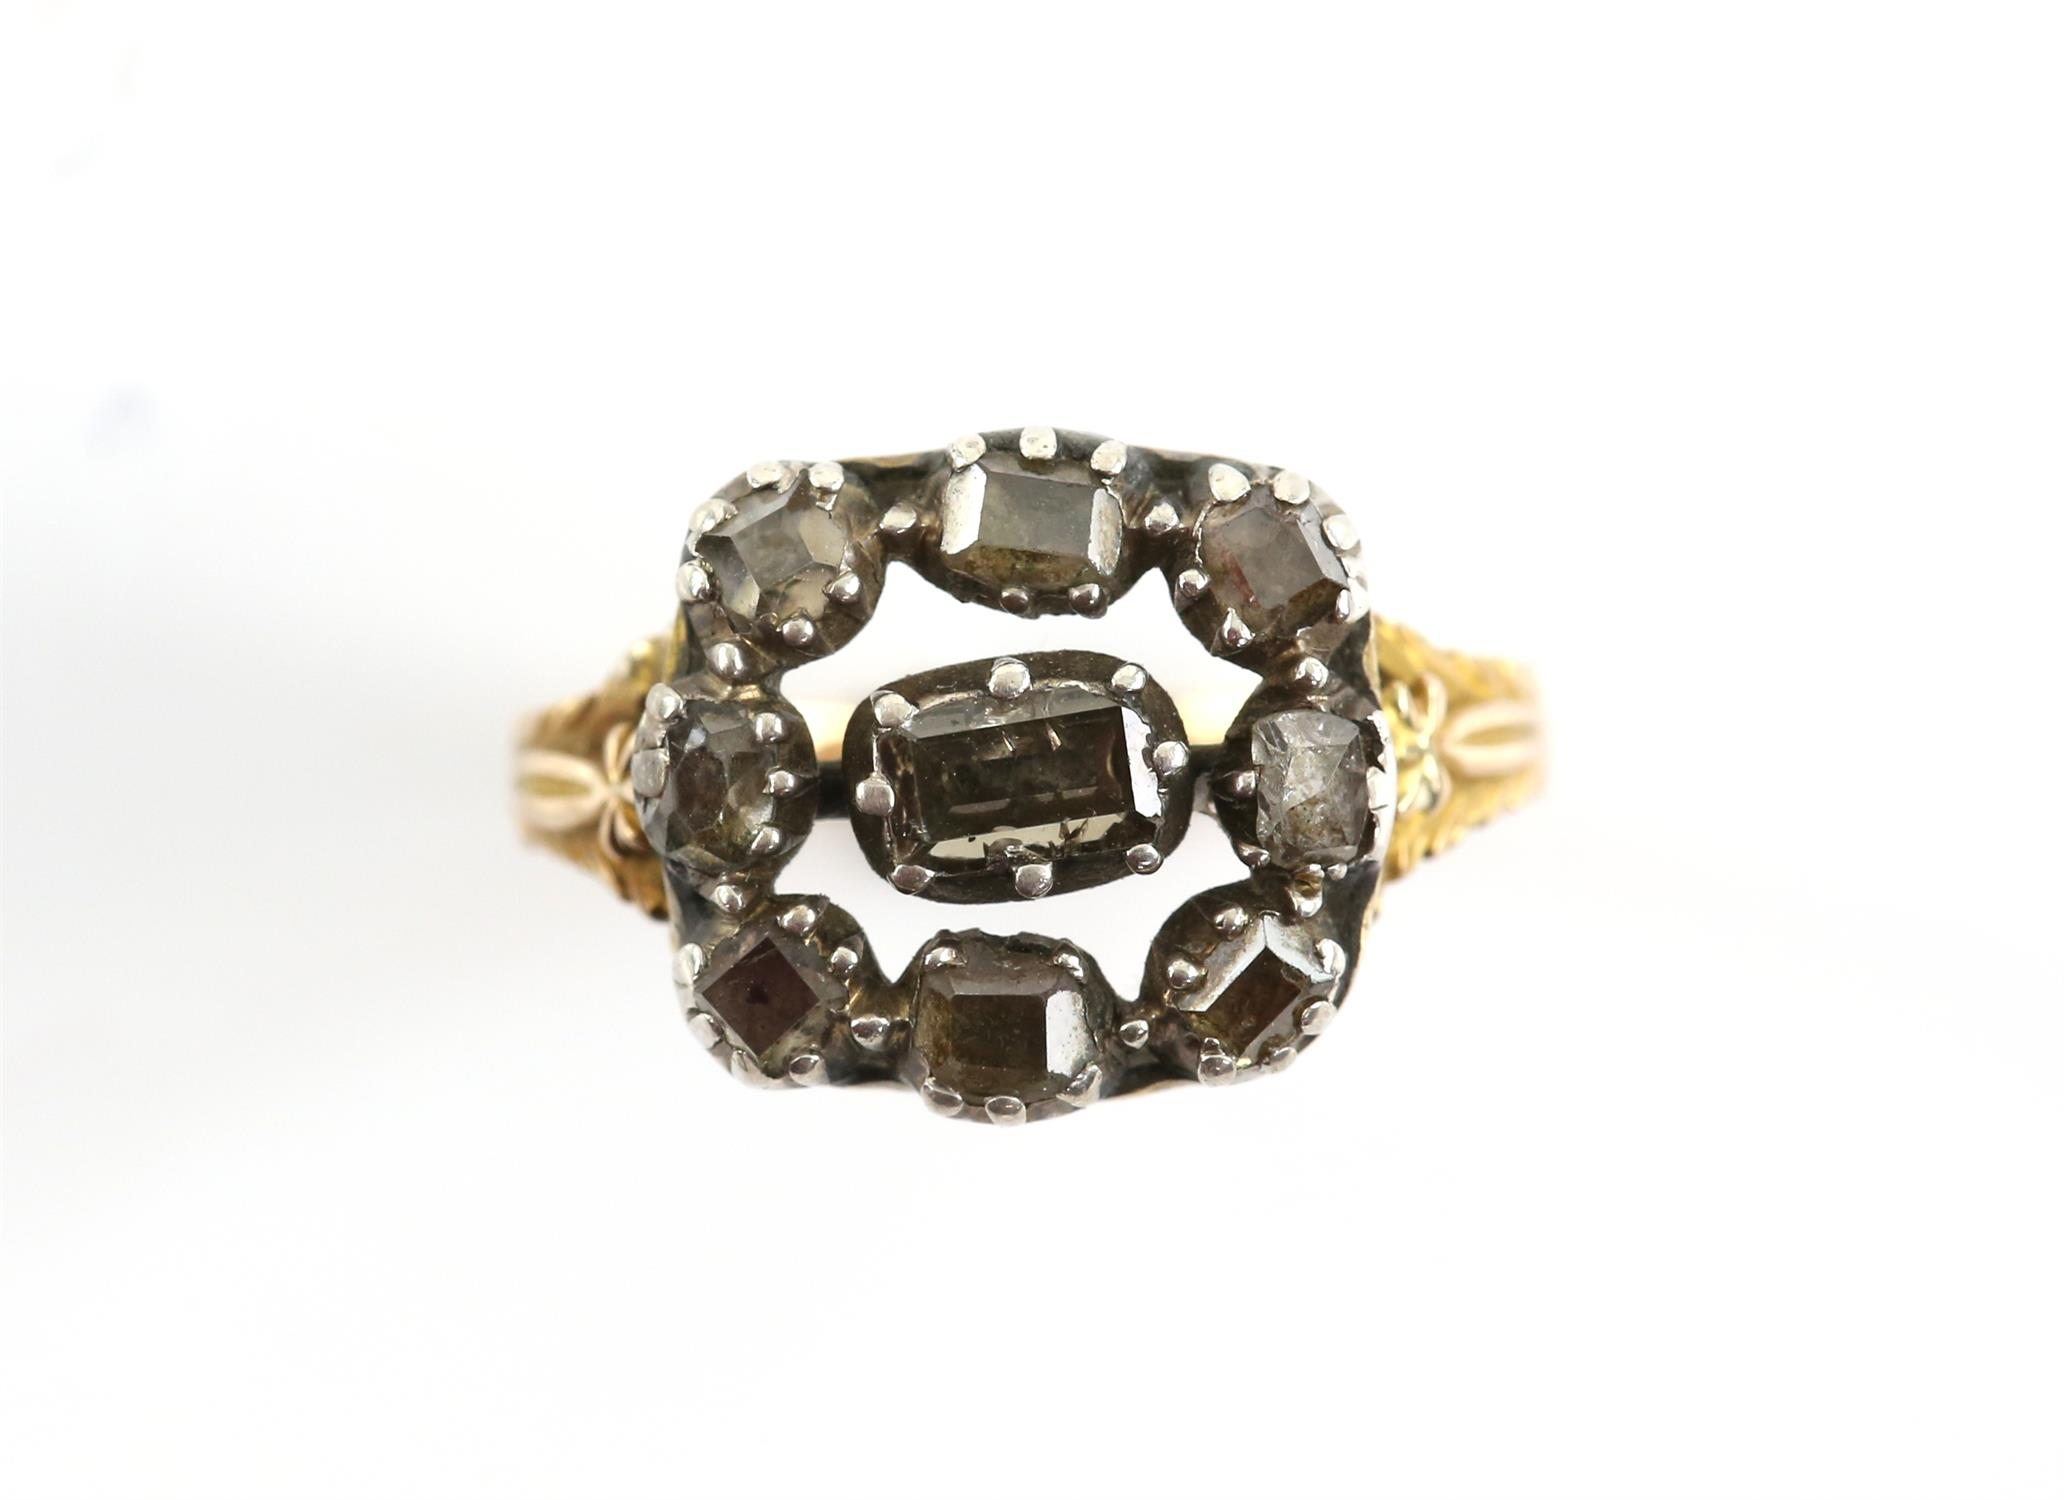 Antique diamond set ring, set with table, old cut and rose cut diamonds, mounted in silver,